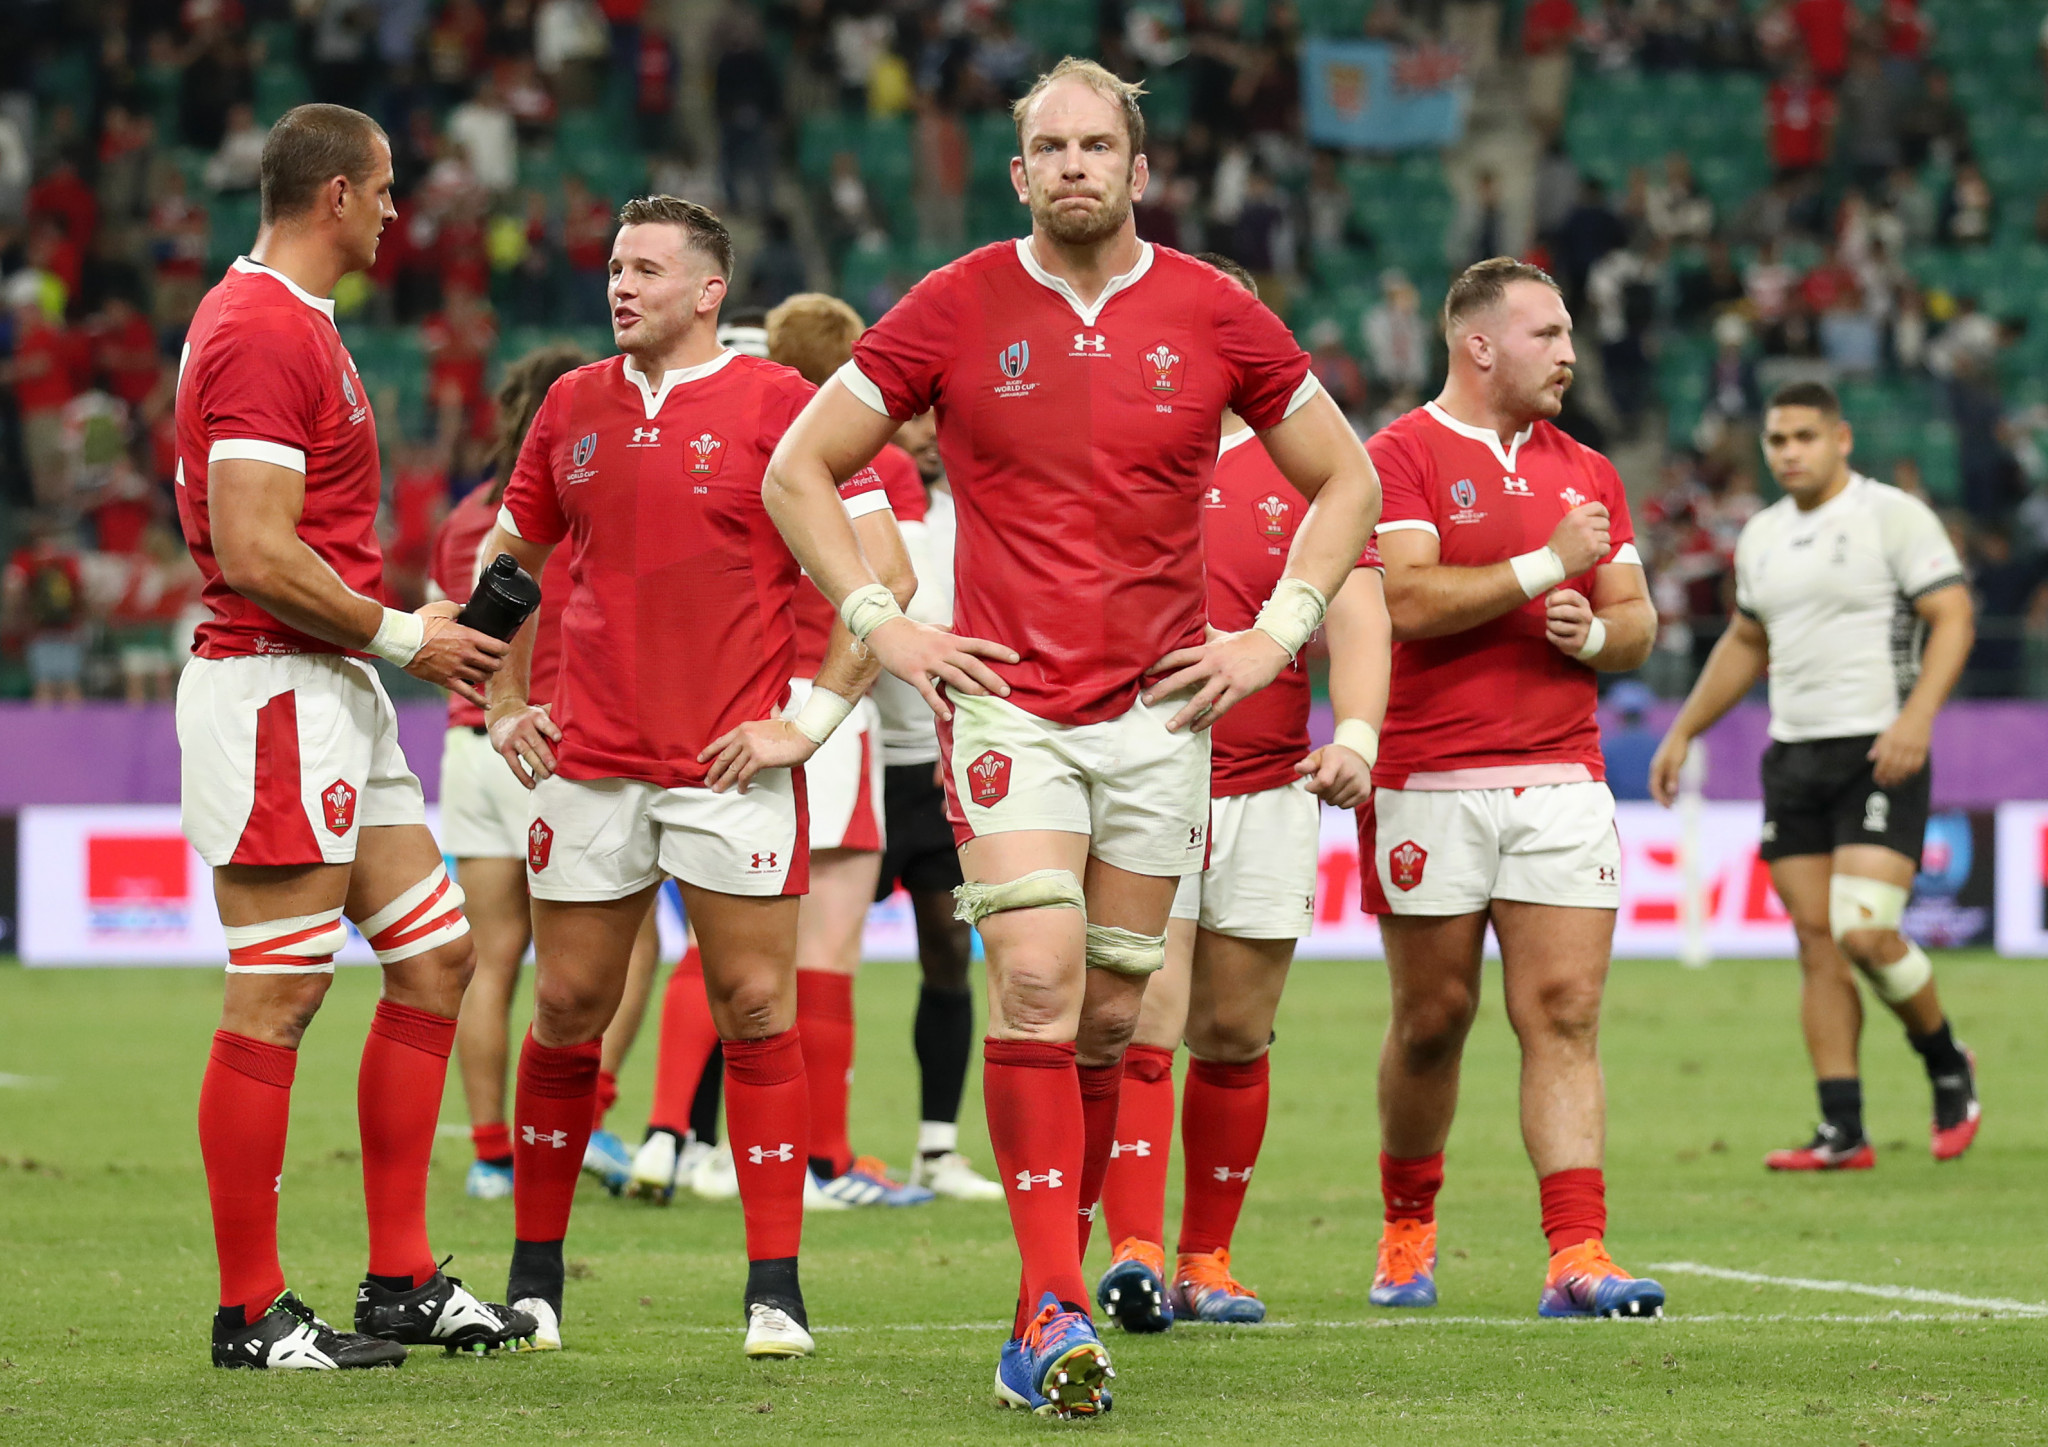 Battered and bruised, Wales have much to work on ©Getty Images